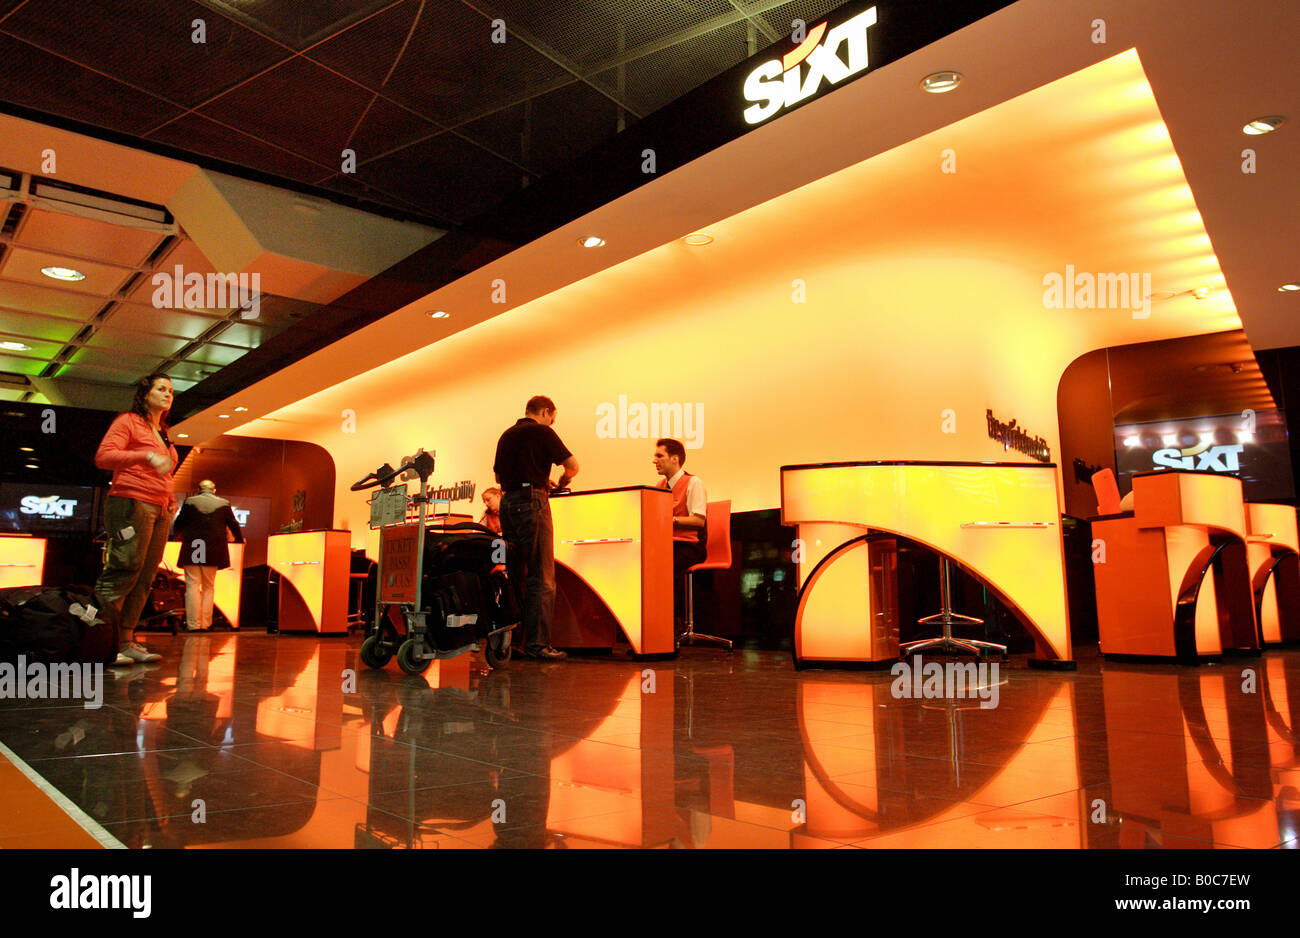 Sixt is proud to offer you a vehicle for whatever your budget and purpose. And with over 15 different car brands, over 5 van brands, motorcycles plus bicycles, Sixt is your cup of tea.